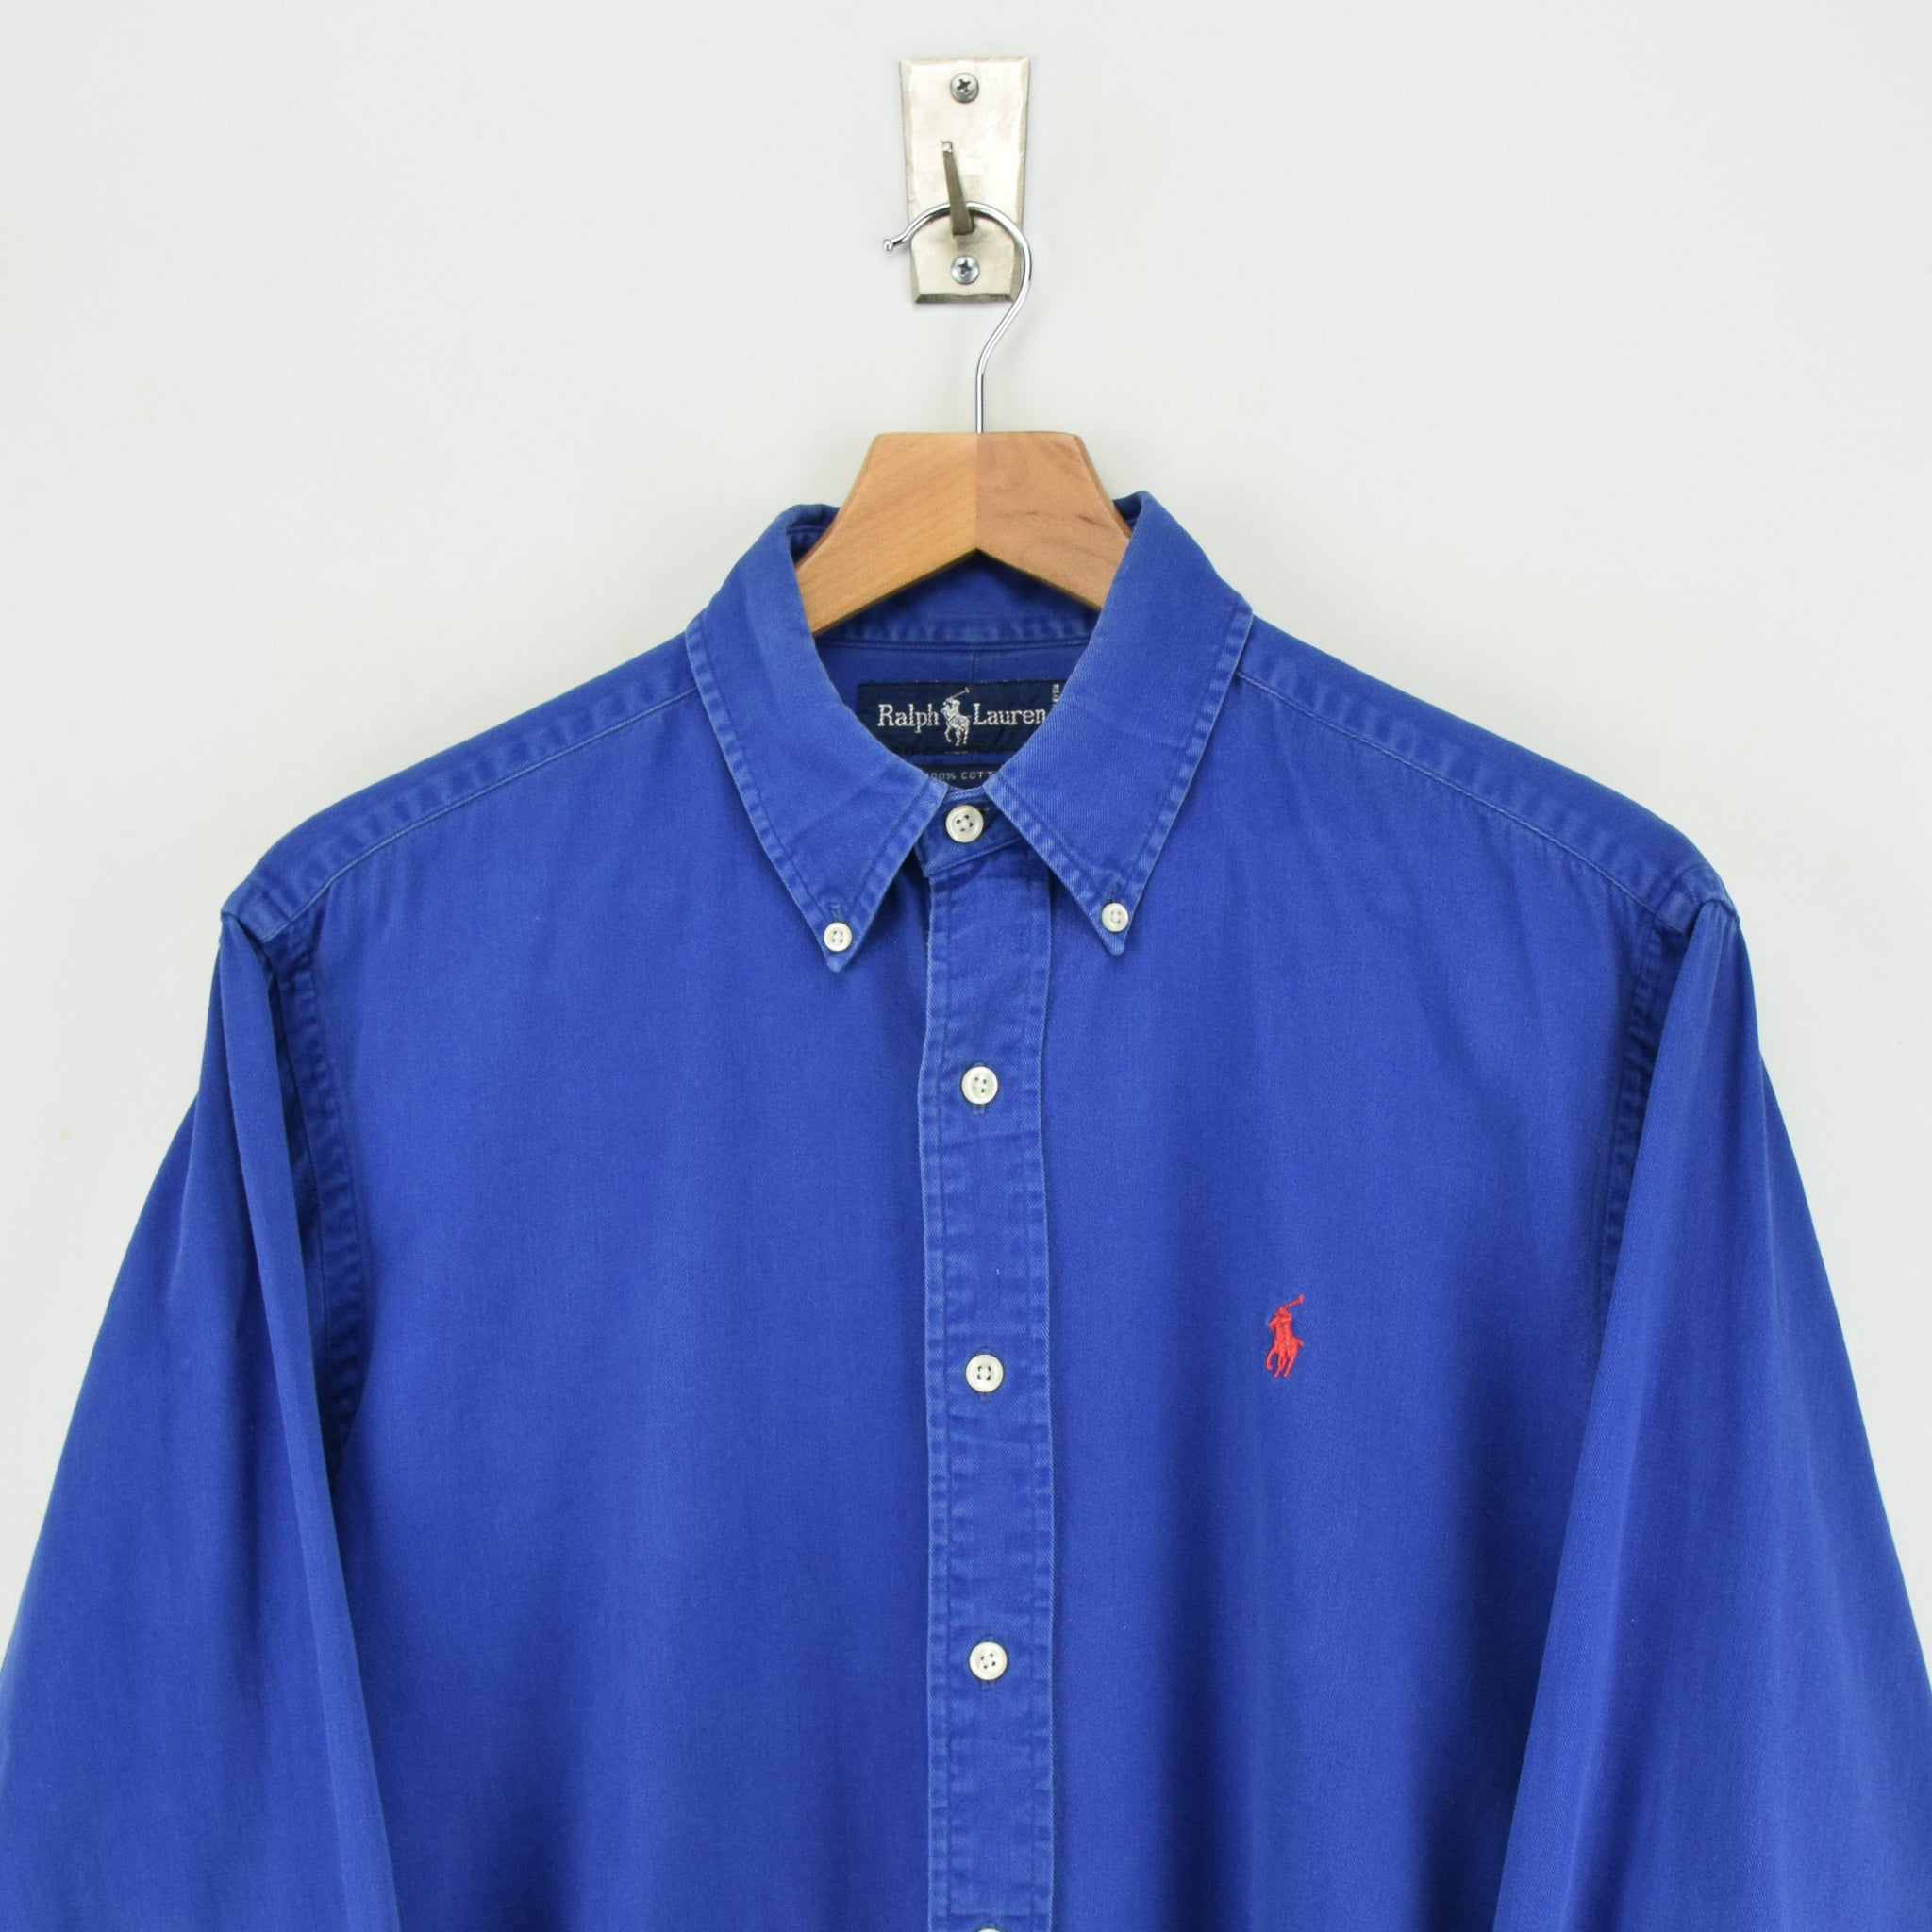 Vintage 80s Ralph Lauren Polo Blue Long Sleeve Cotton Shirt L chest